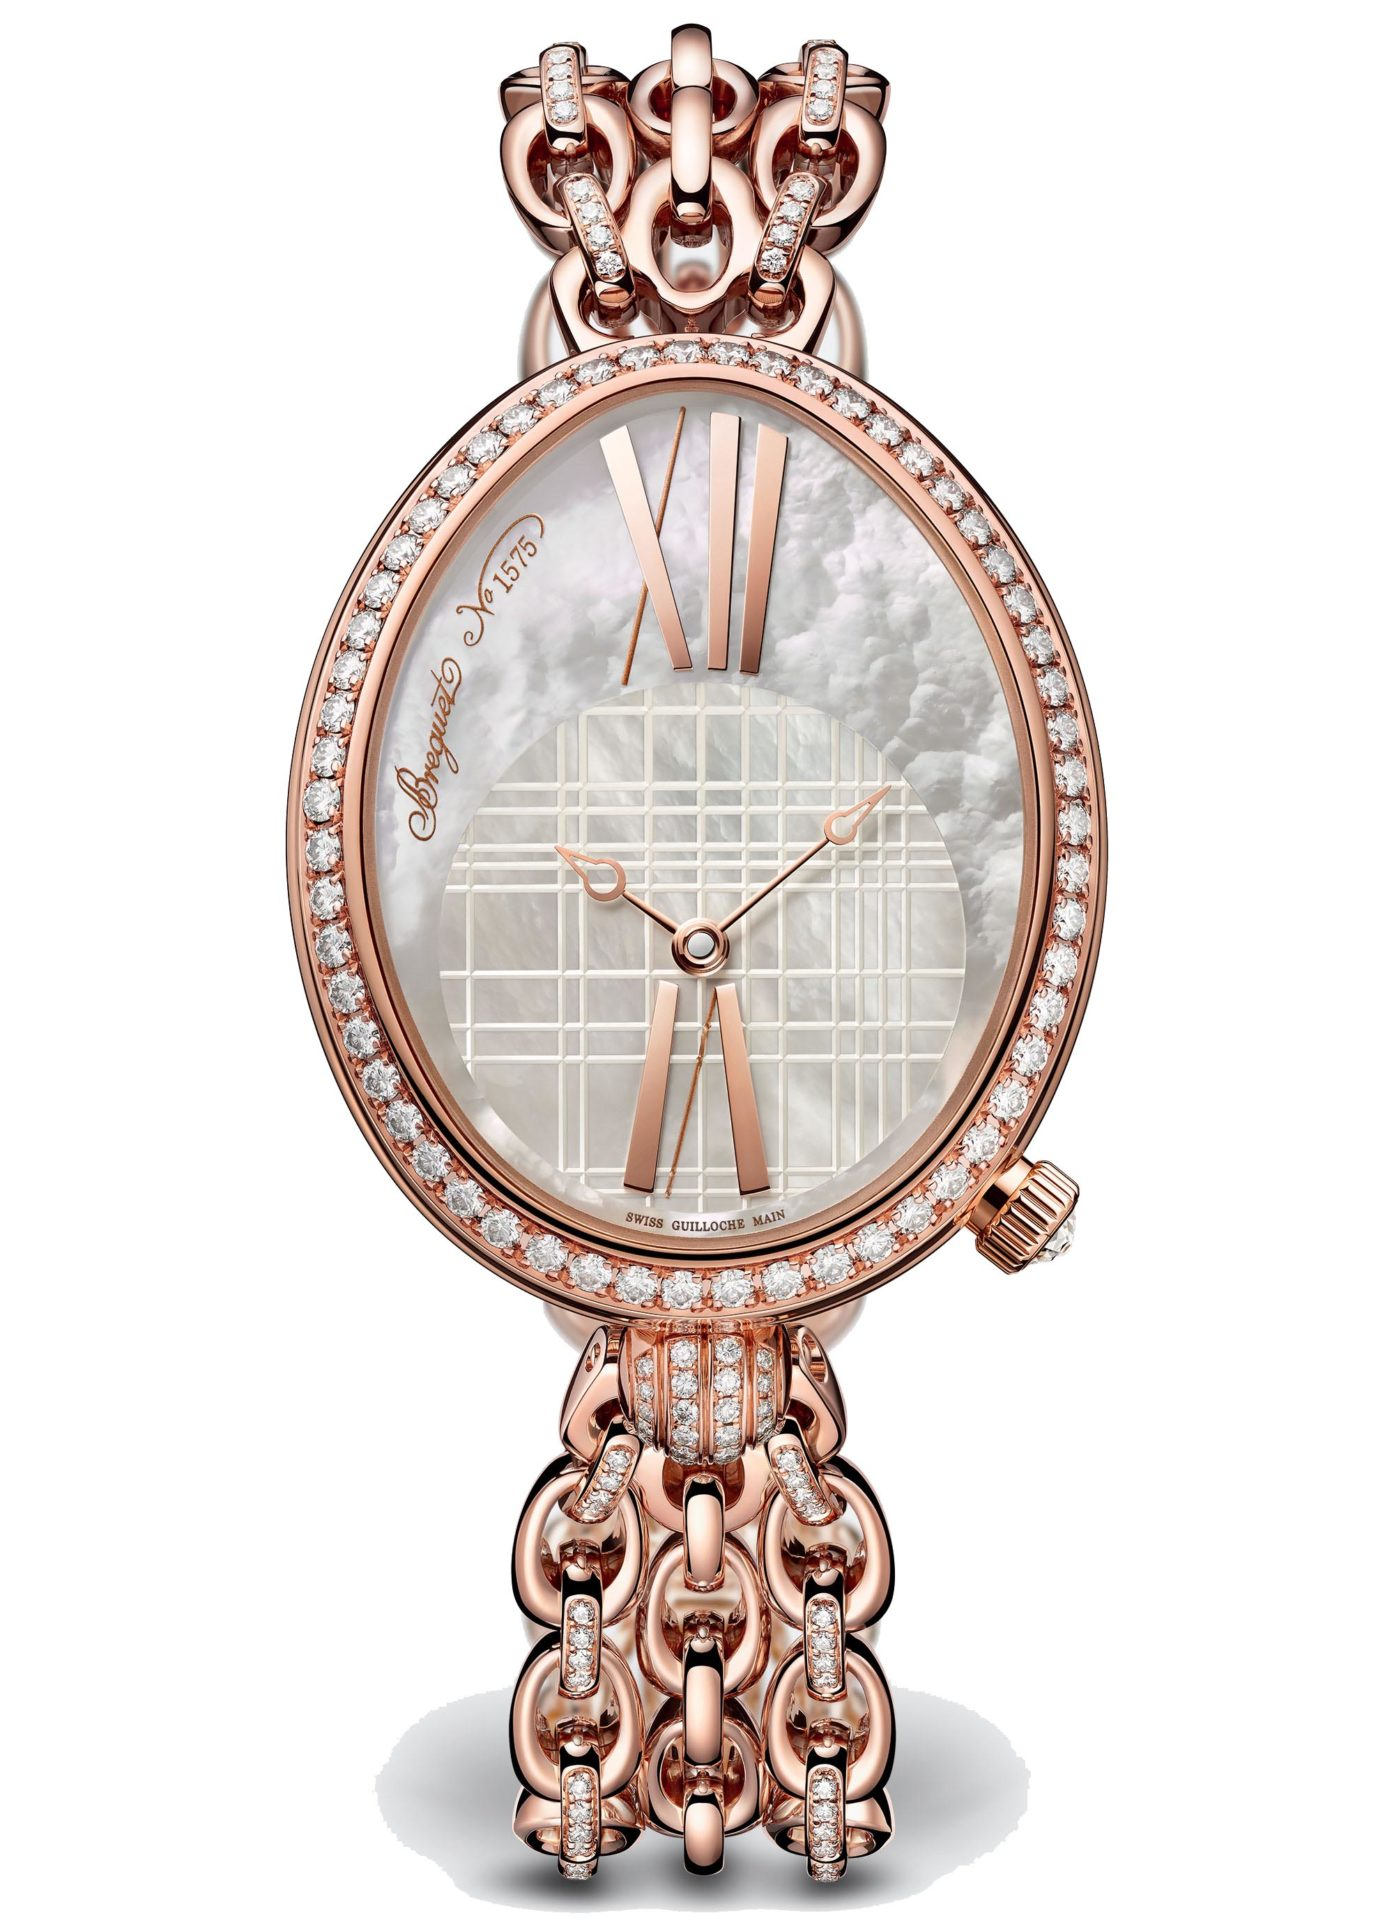 Breguet-Reine-de-Naples-8965-Hall-of-Time-8965br-5w-j53-dd0d